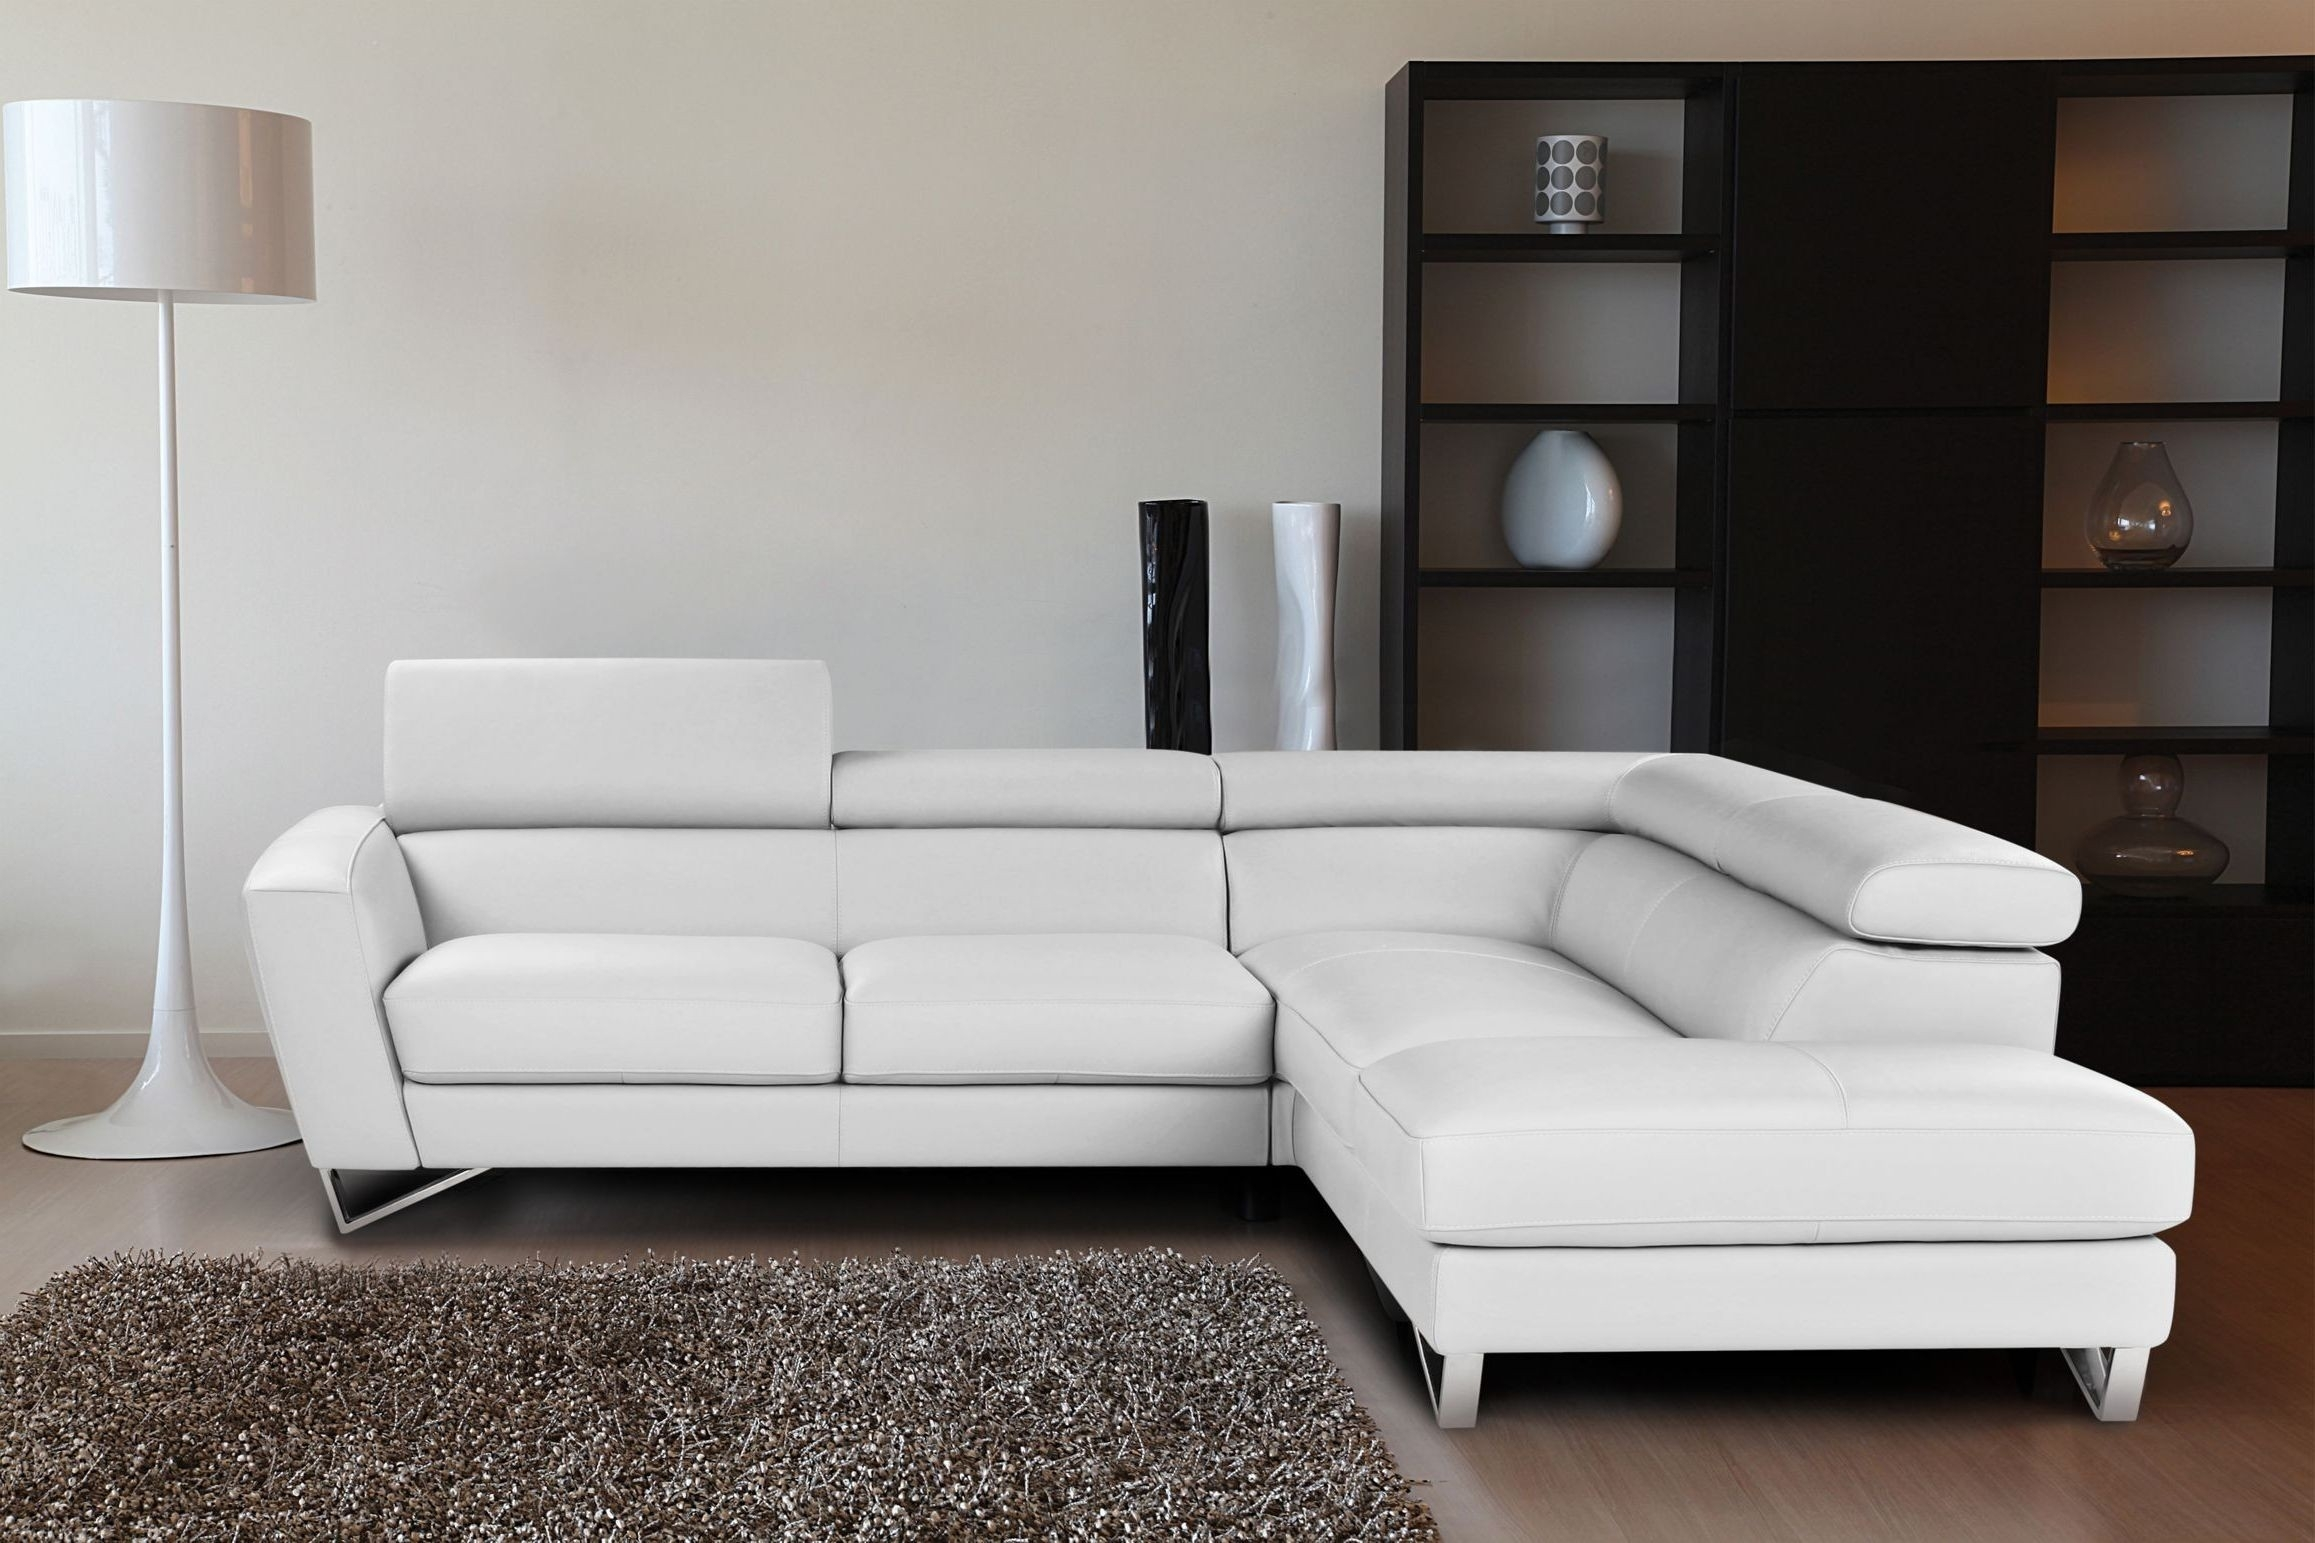 Furniture : Sectional Sofa With Sleeper Sectional Couch Financing inside 80X80 Sectional Sofas (Image 10 of 10)